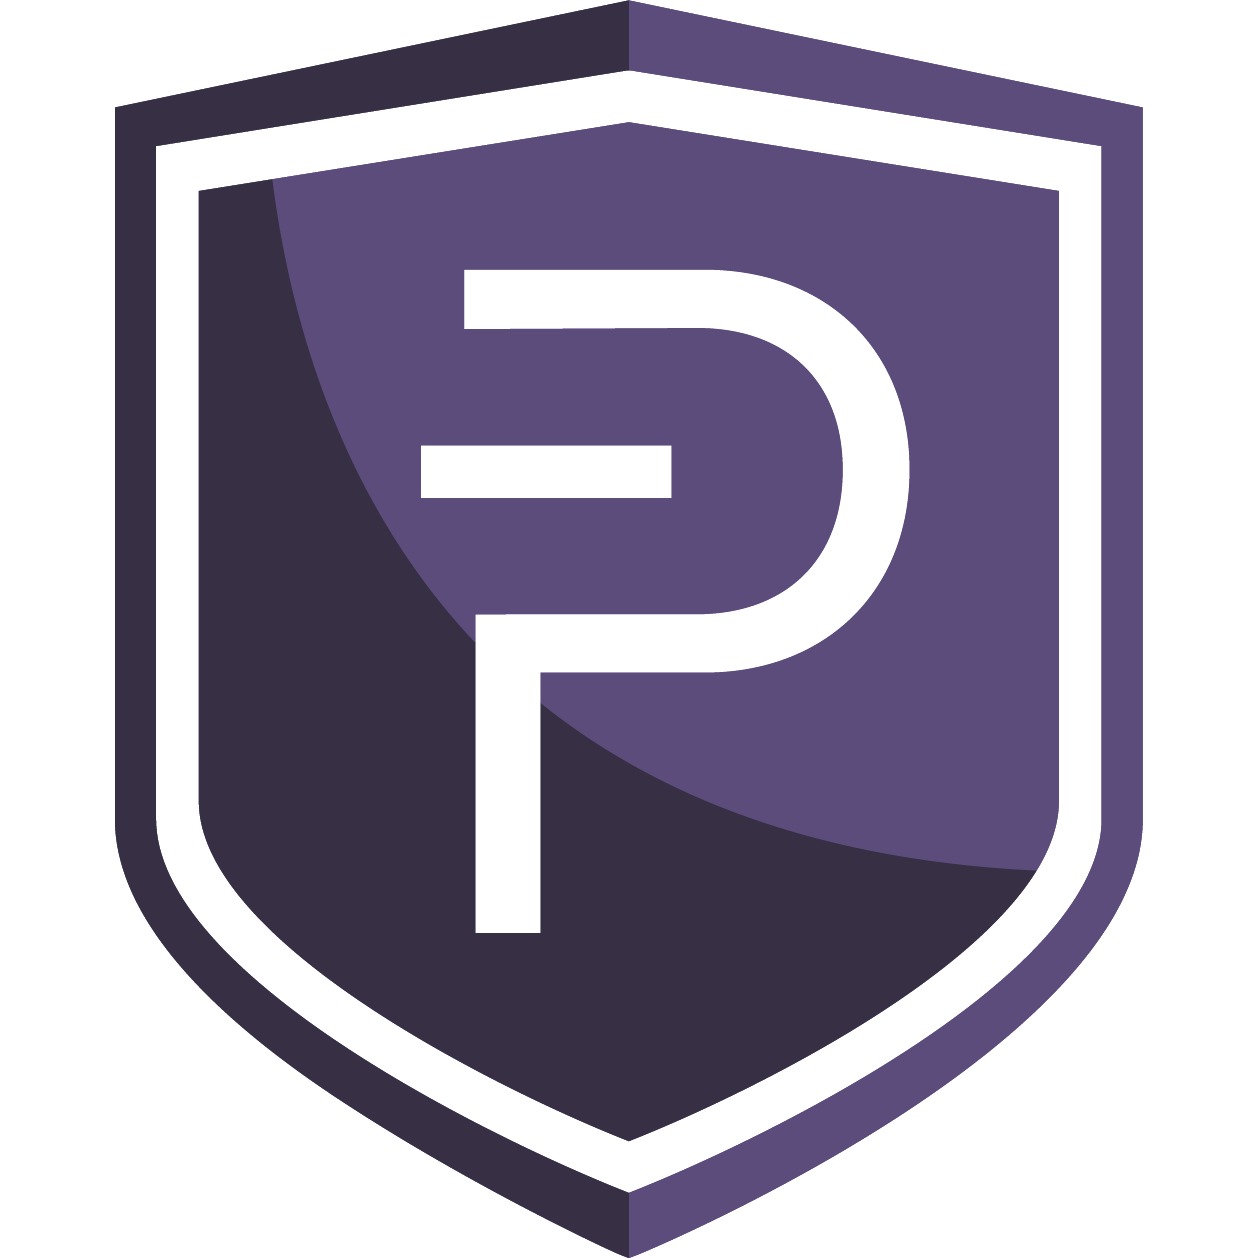 CoinPayments provides PIVX POS and other online payment tools to help retailers accept PIVX.